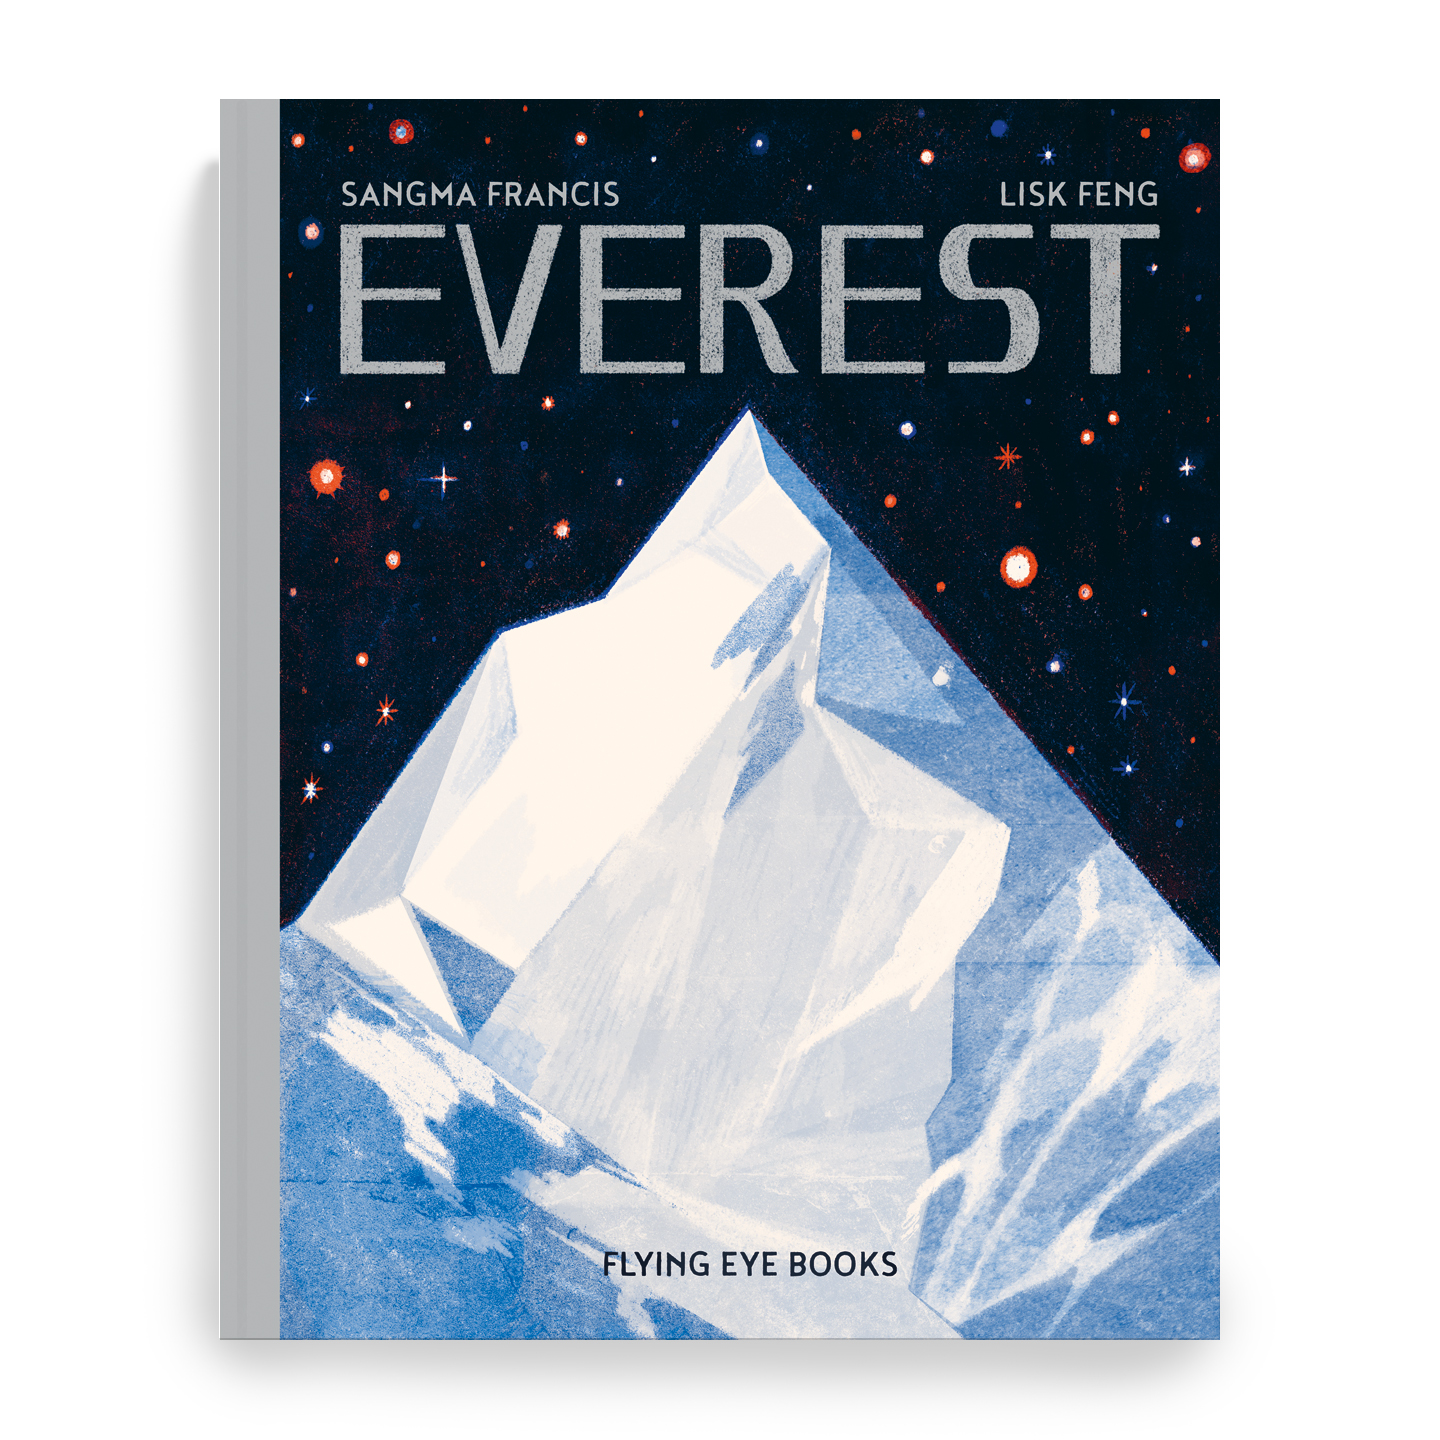 180504_Everest_coverssssss copy.jpg